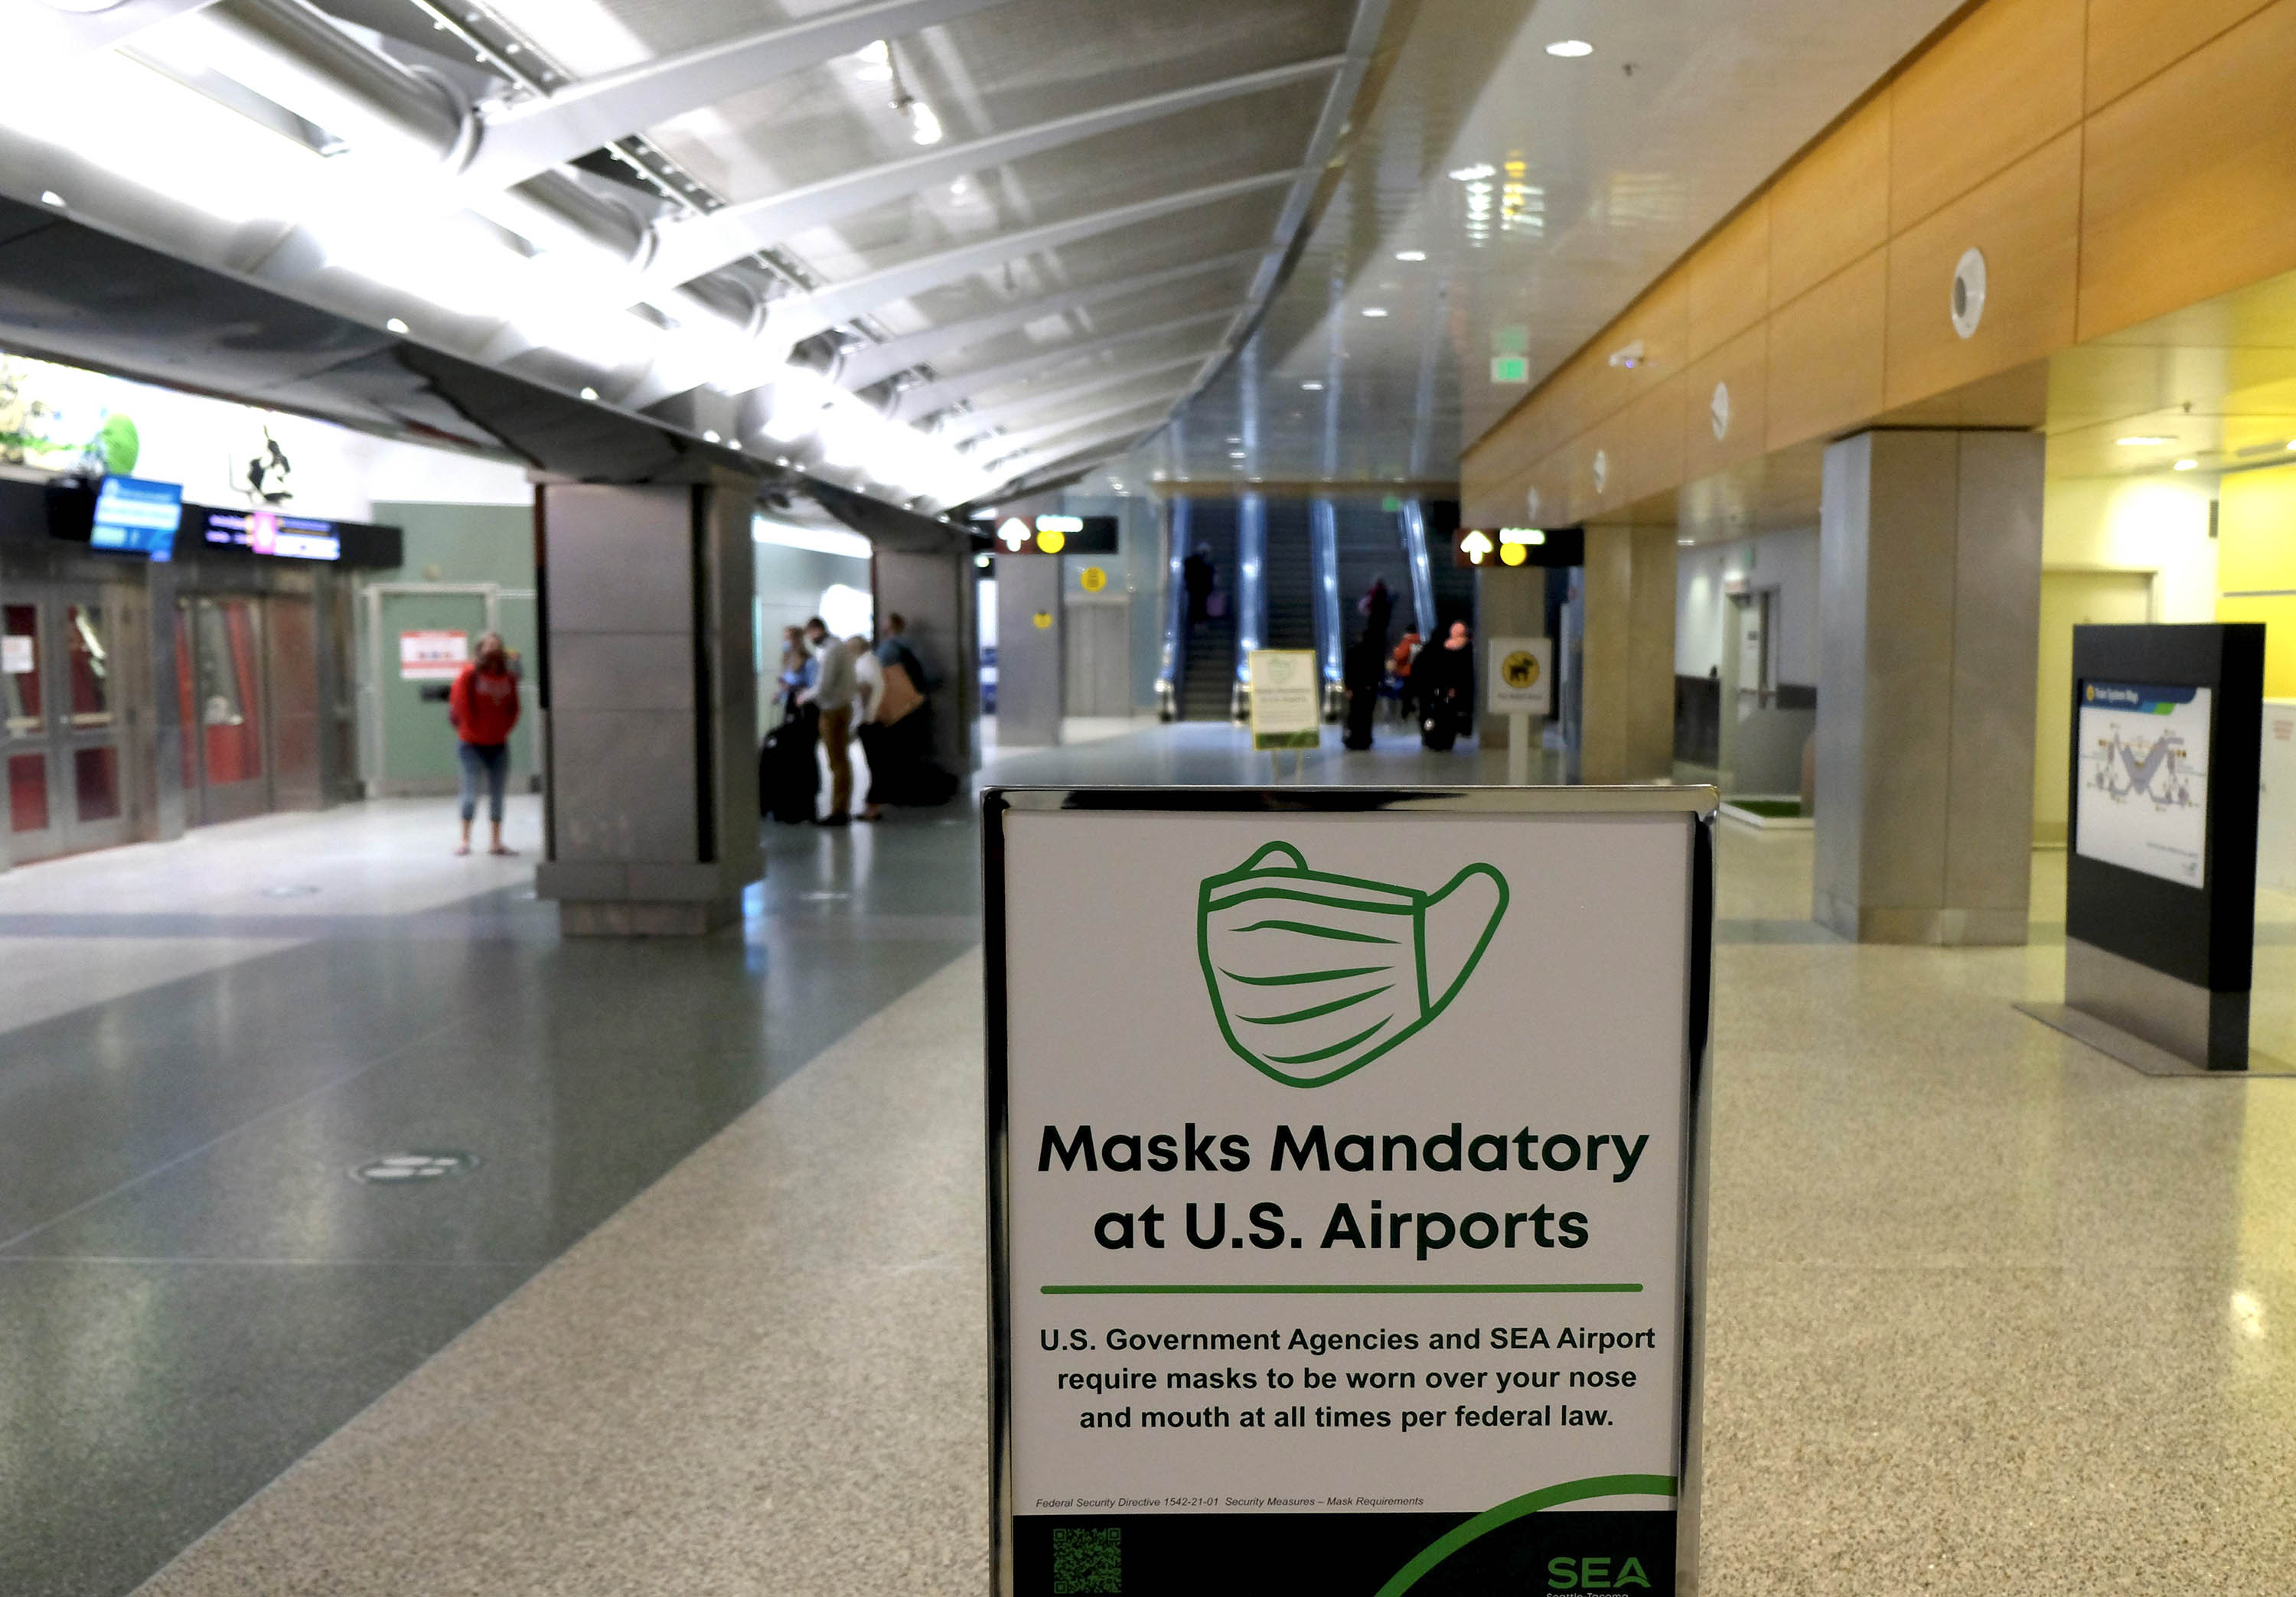 A sign gives notice of mandatory requirements for wearing masks, at an airport in Seattle, Washington, on March 14.